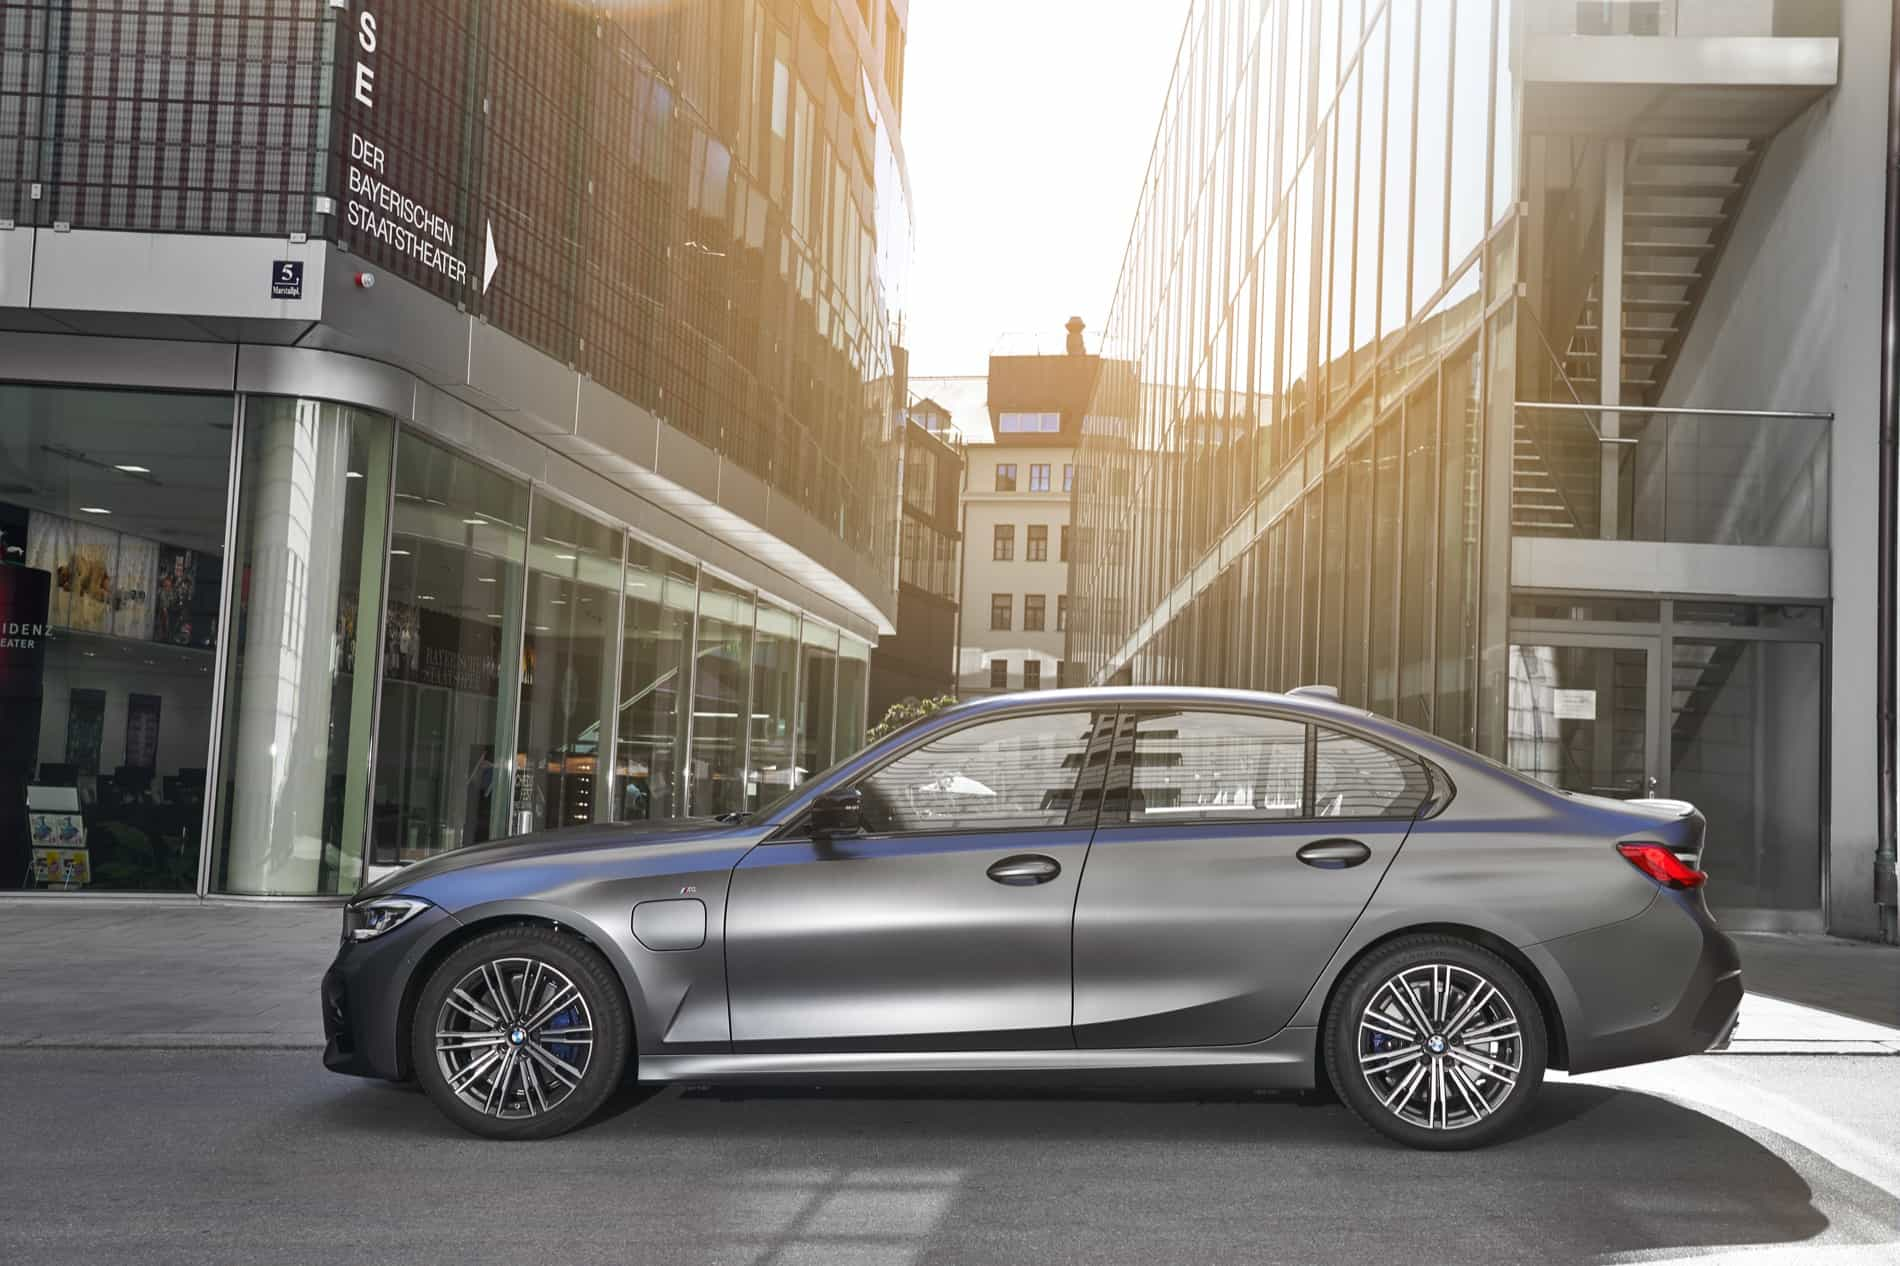 BMW_3_Series_Plug-in_Hybrid-006